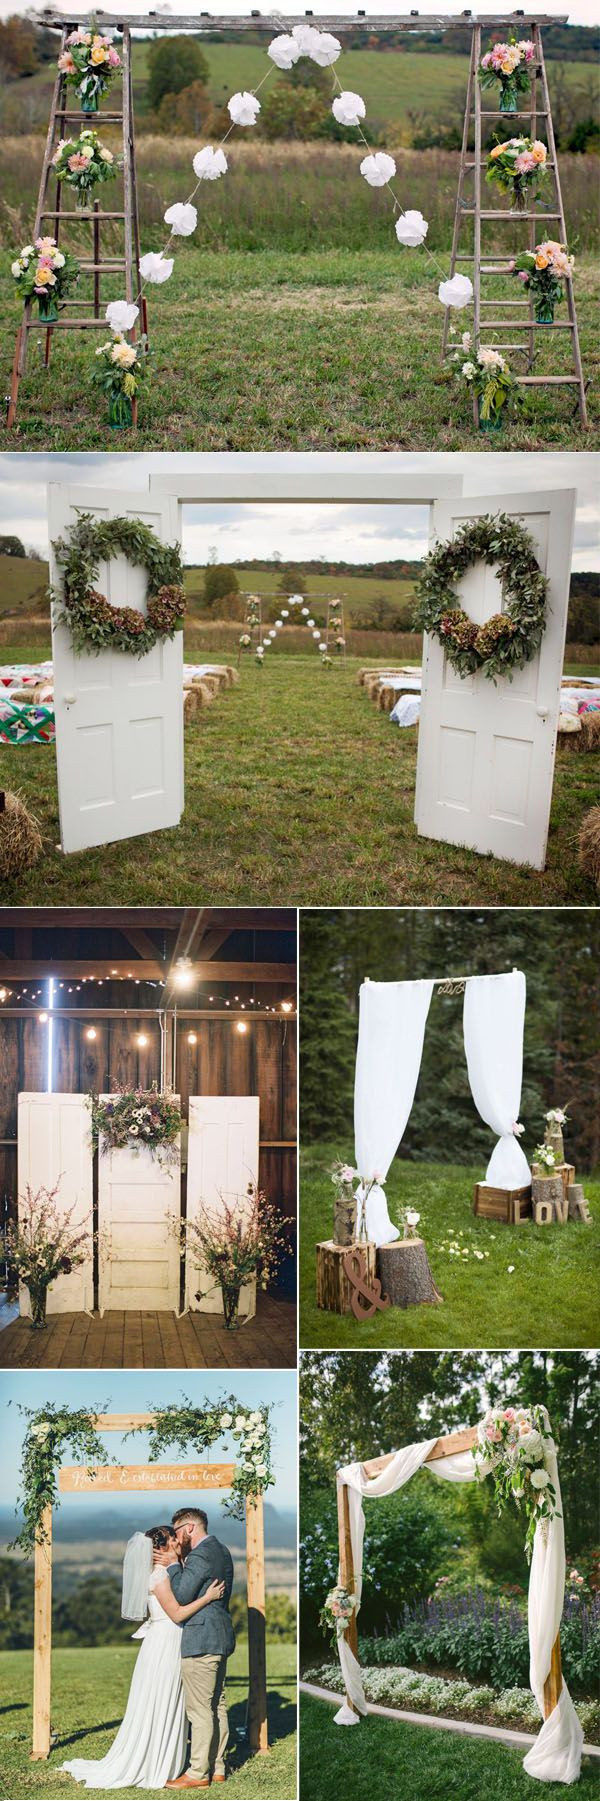 Best ideas about DIY Wedding Altar . Save or Pin Best 25 Wedding altars ideas on Pinterest Now.